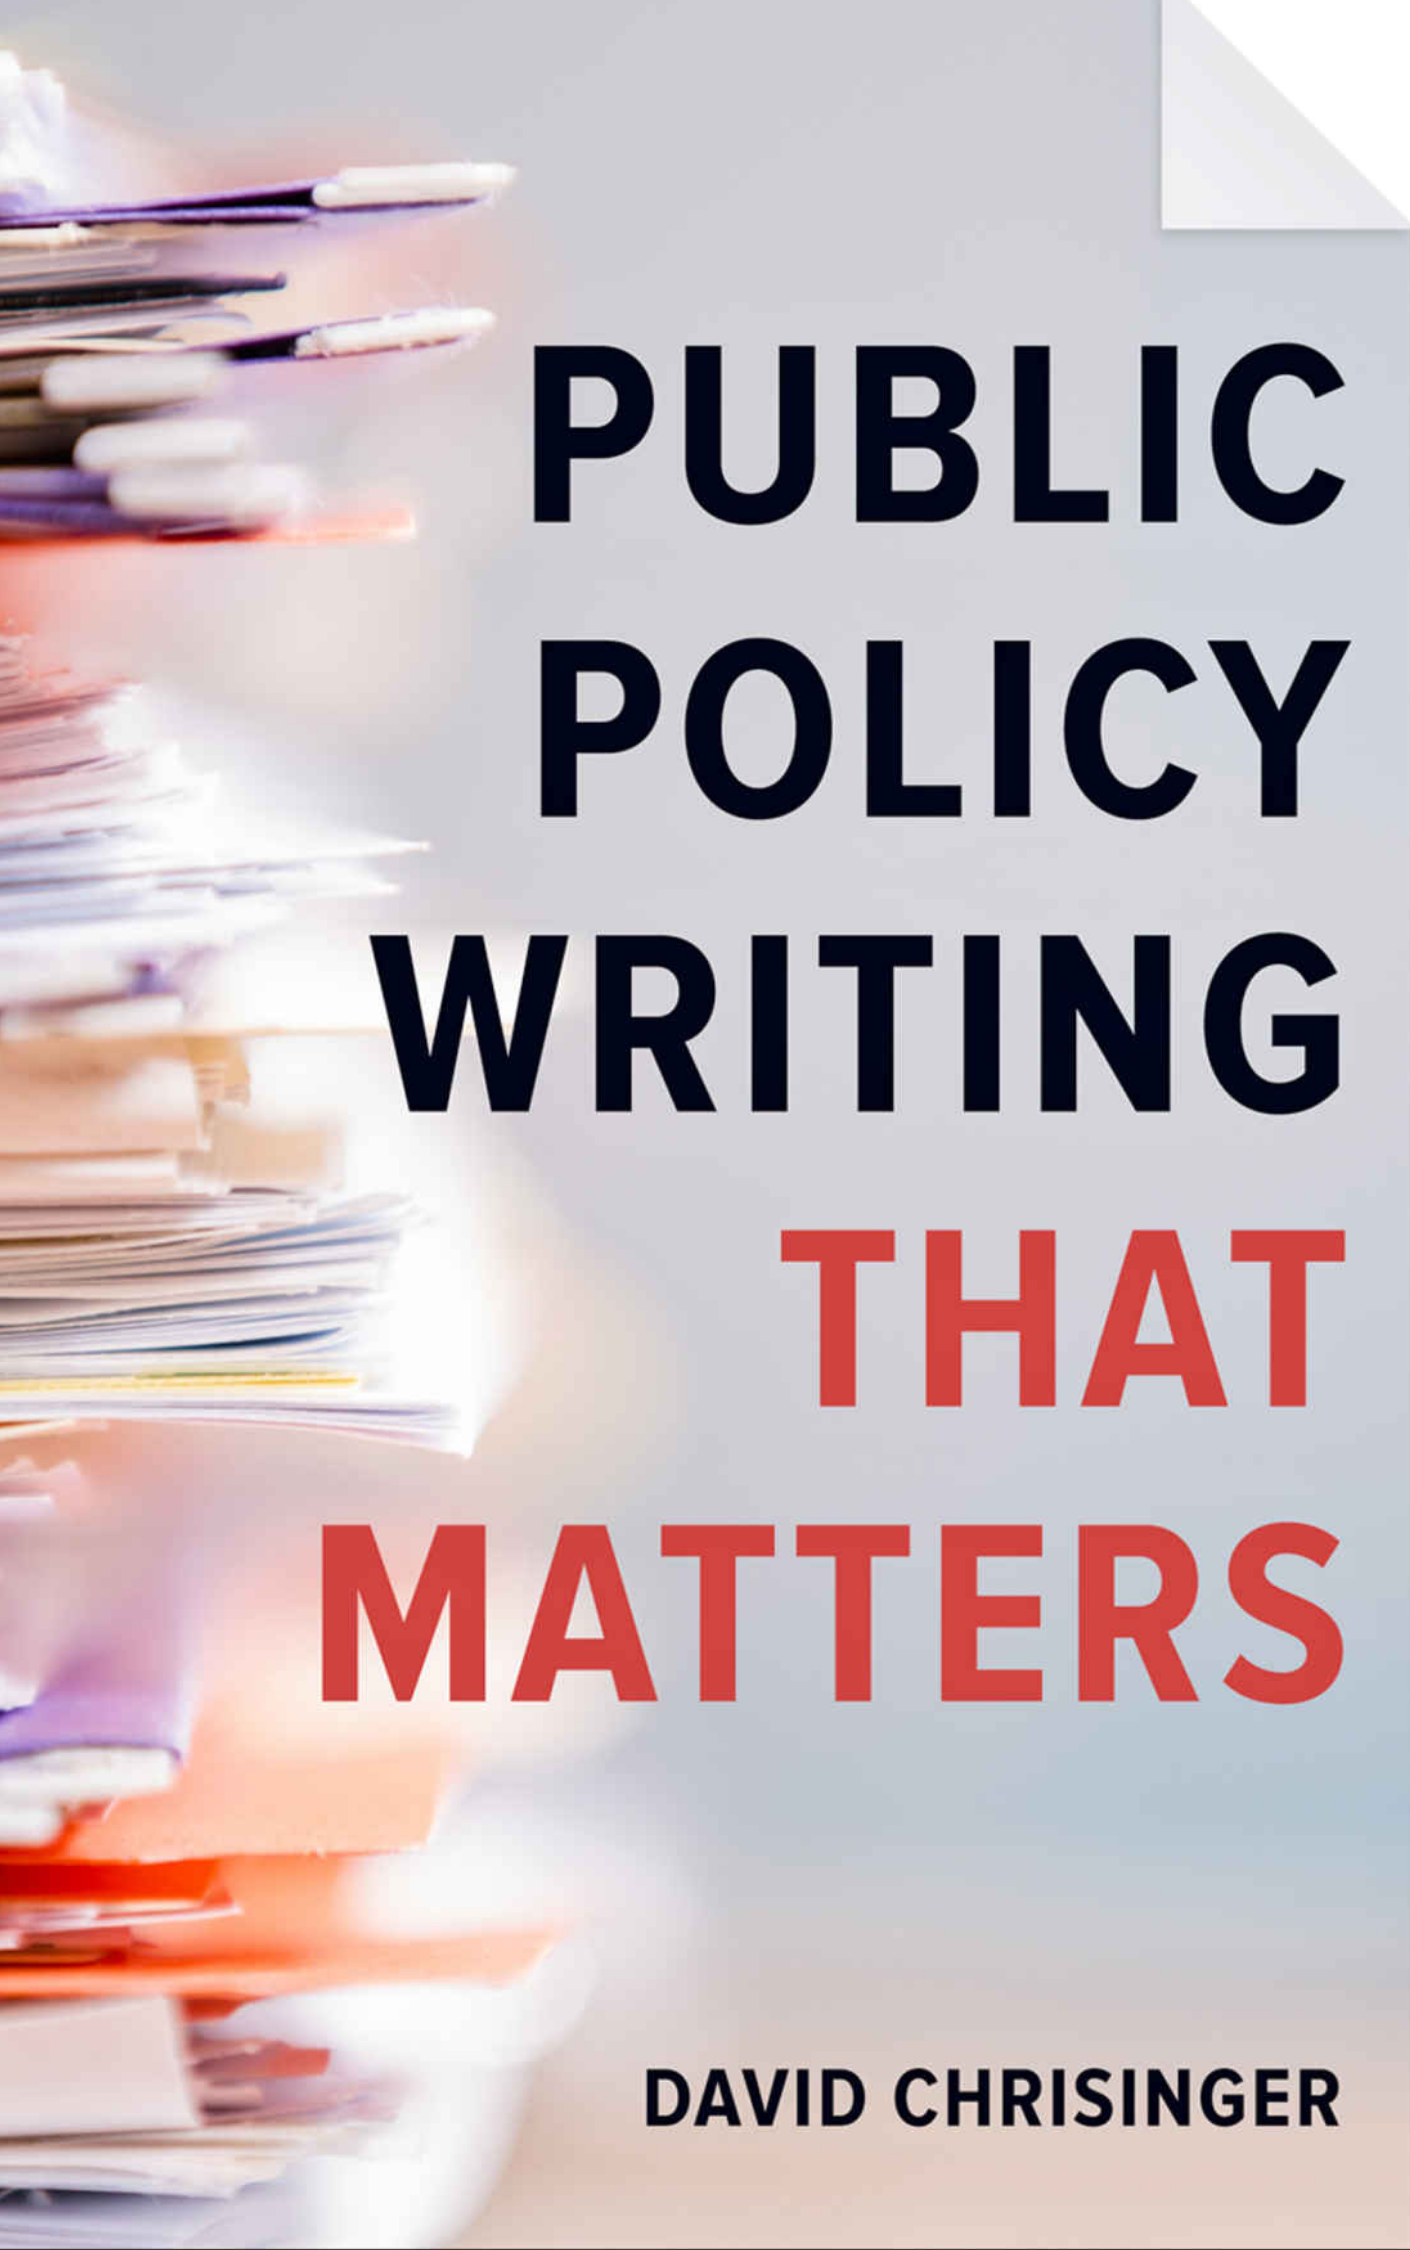 Public Policy That Matters